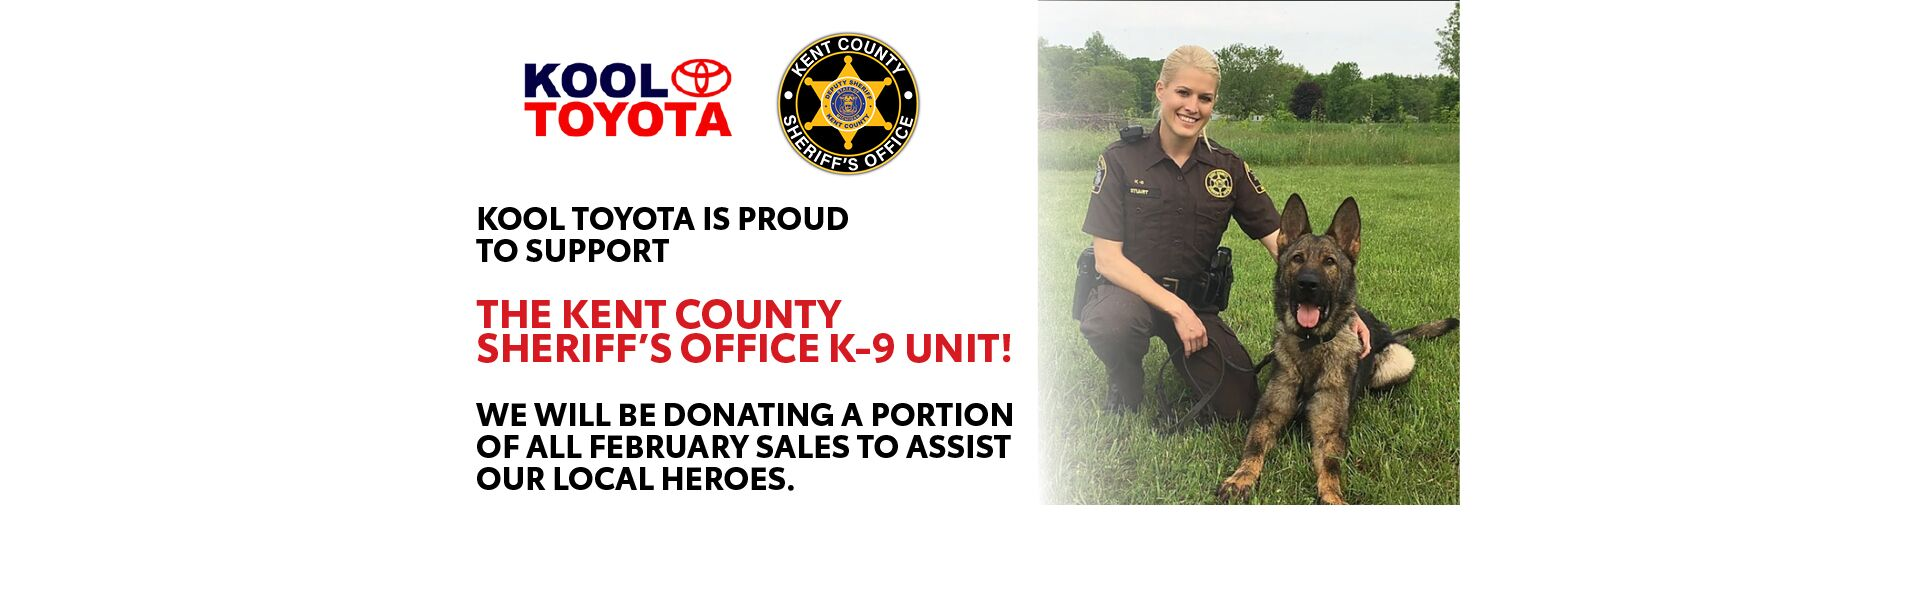 Support Kent County Sheriff's Office K-9 Unit